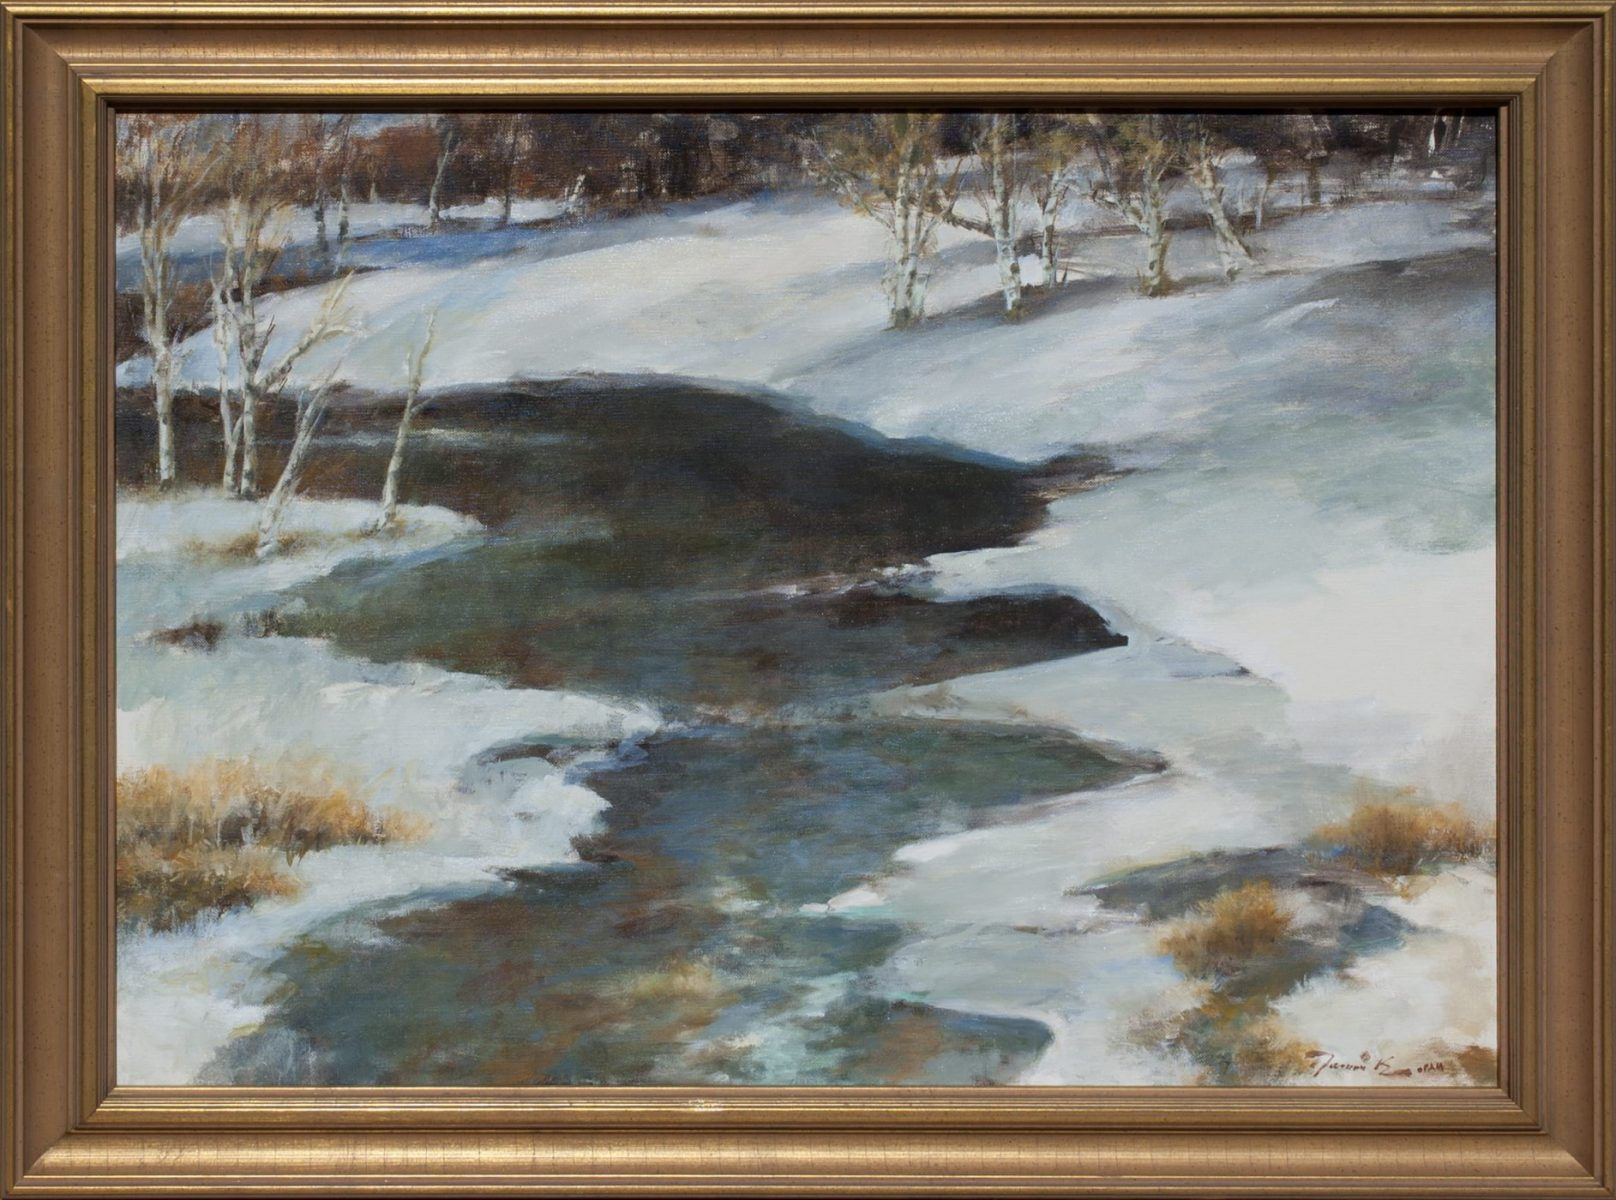 Aspen on the Roaring Fork painting by Ramon Kelley